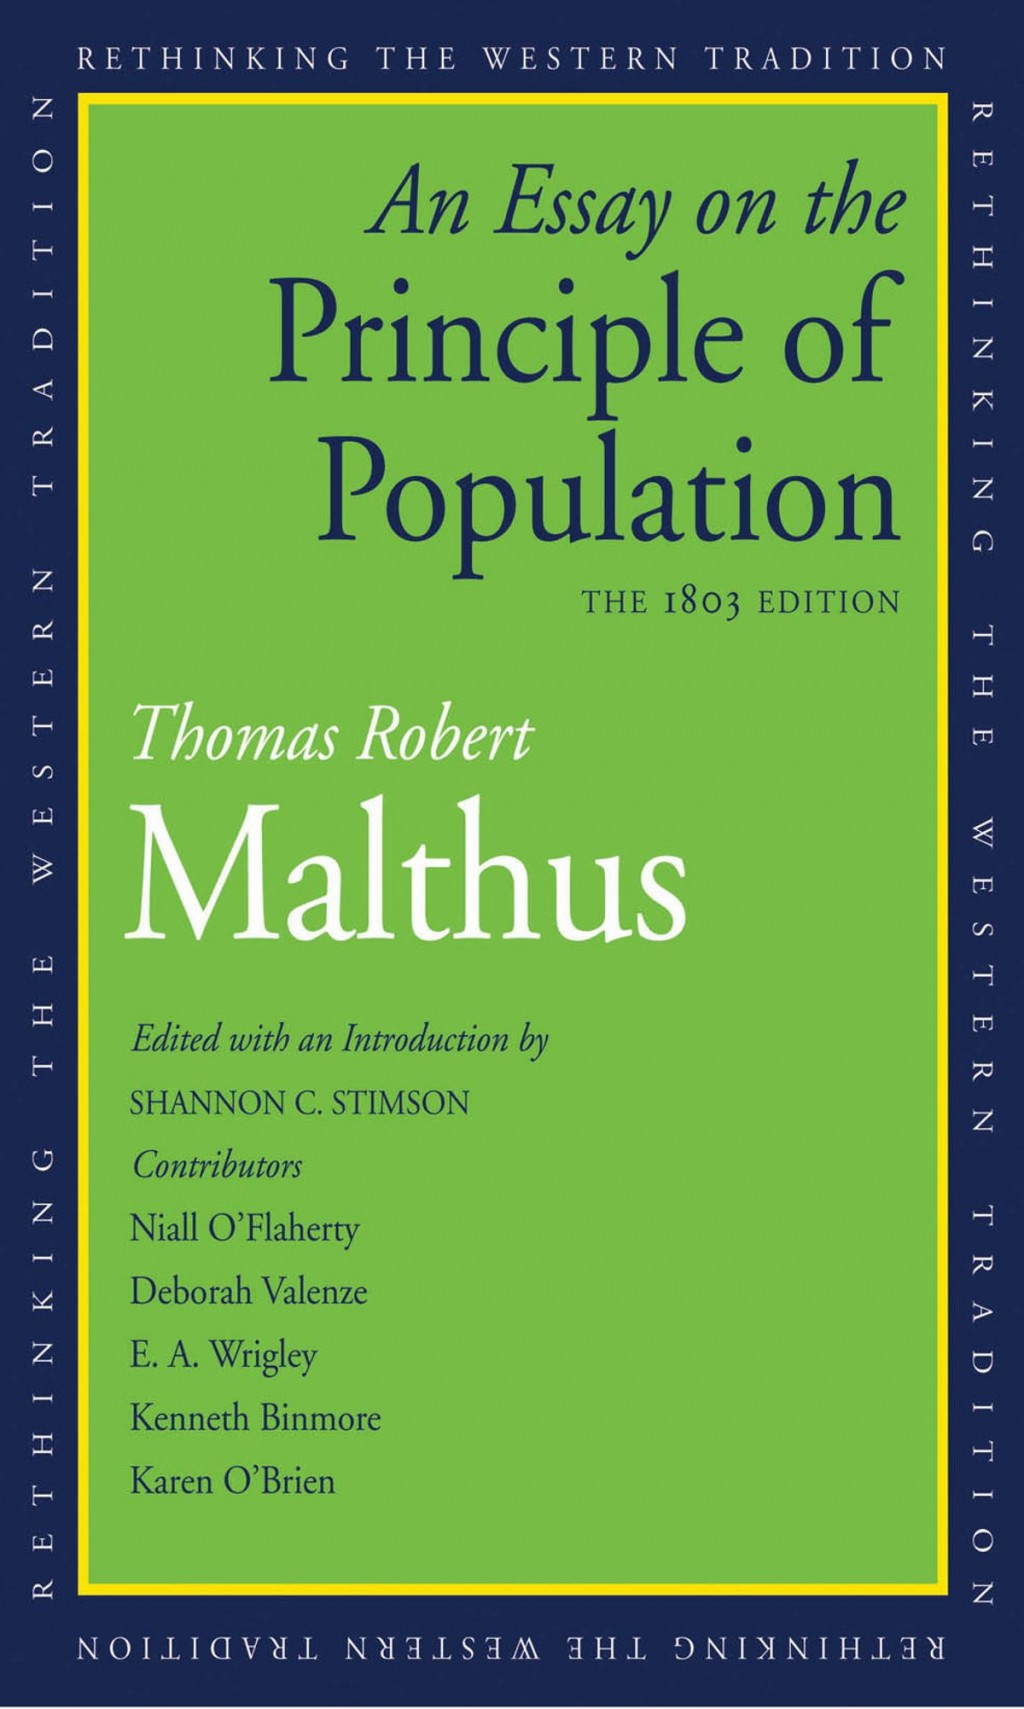 003 Essay On The Principle Of Population Example An Singular Thomas Malthus Sparknotes Advocated Ap Euro Large